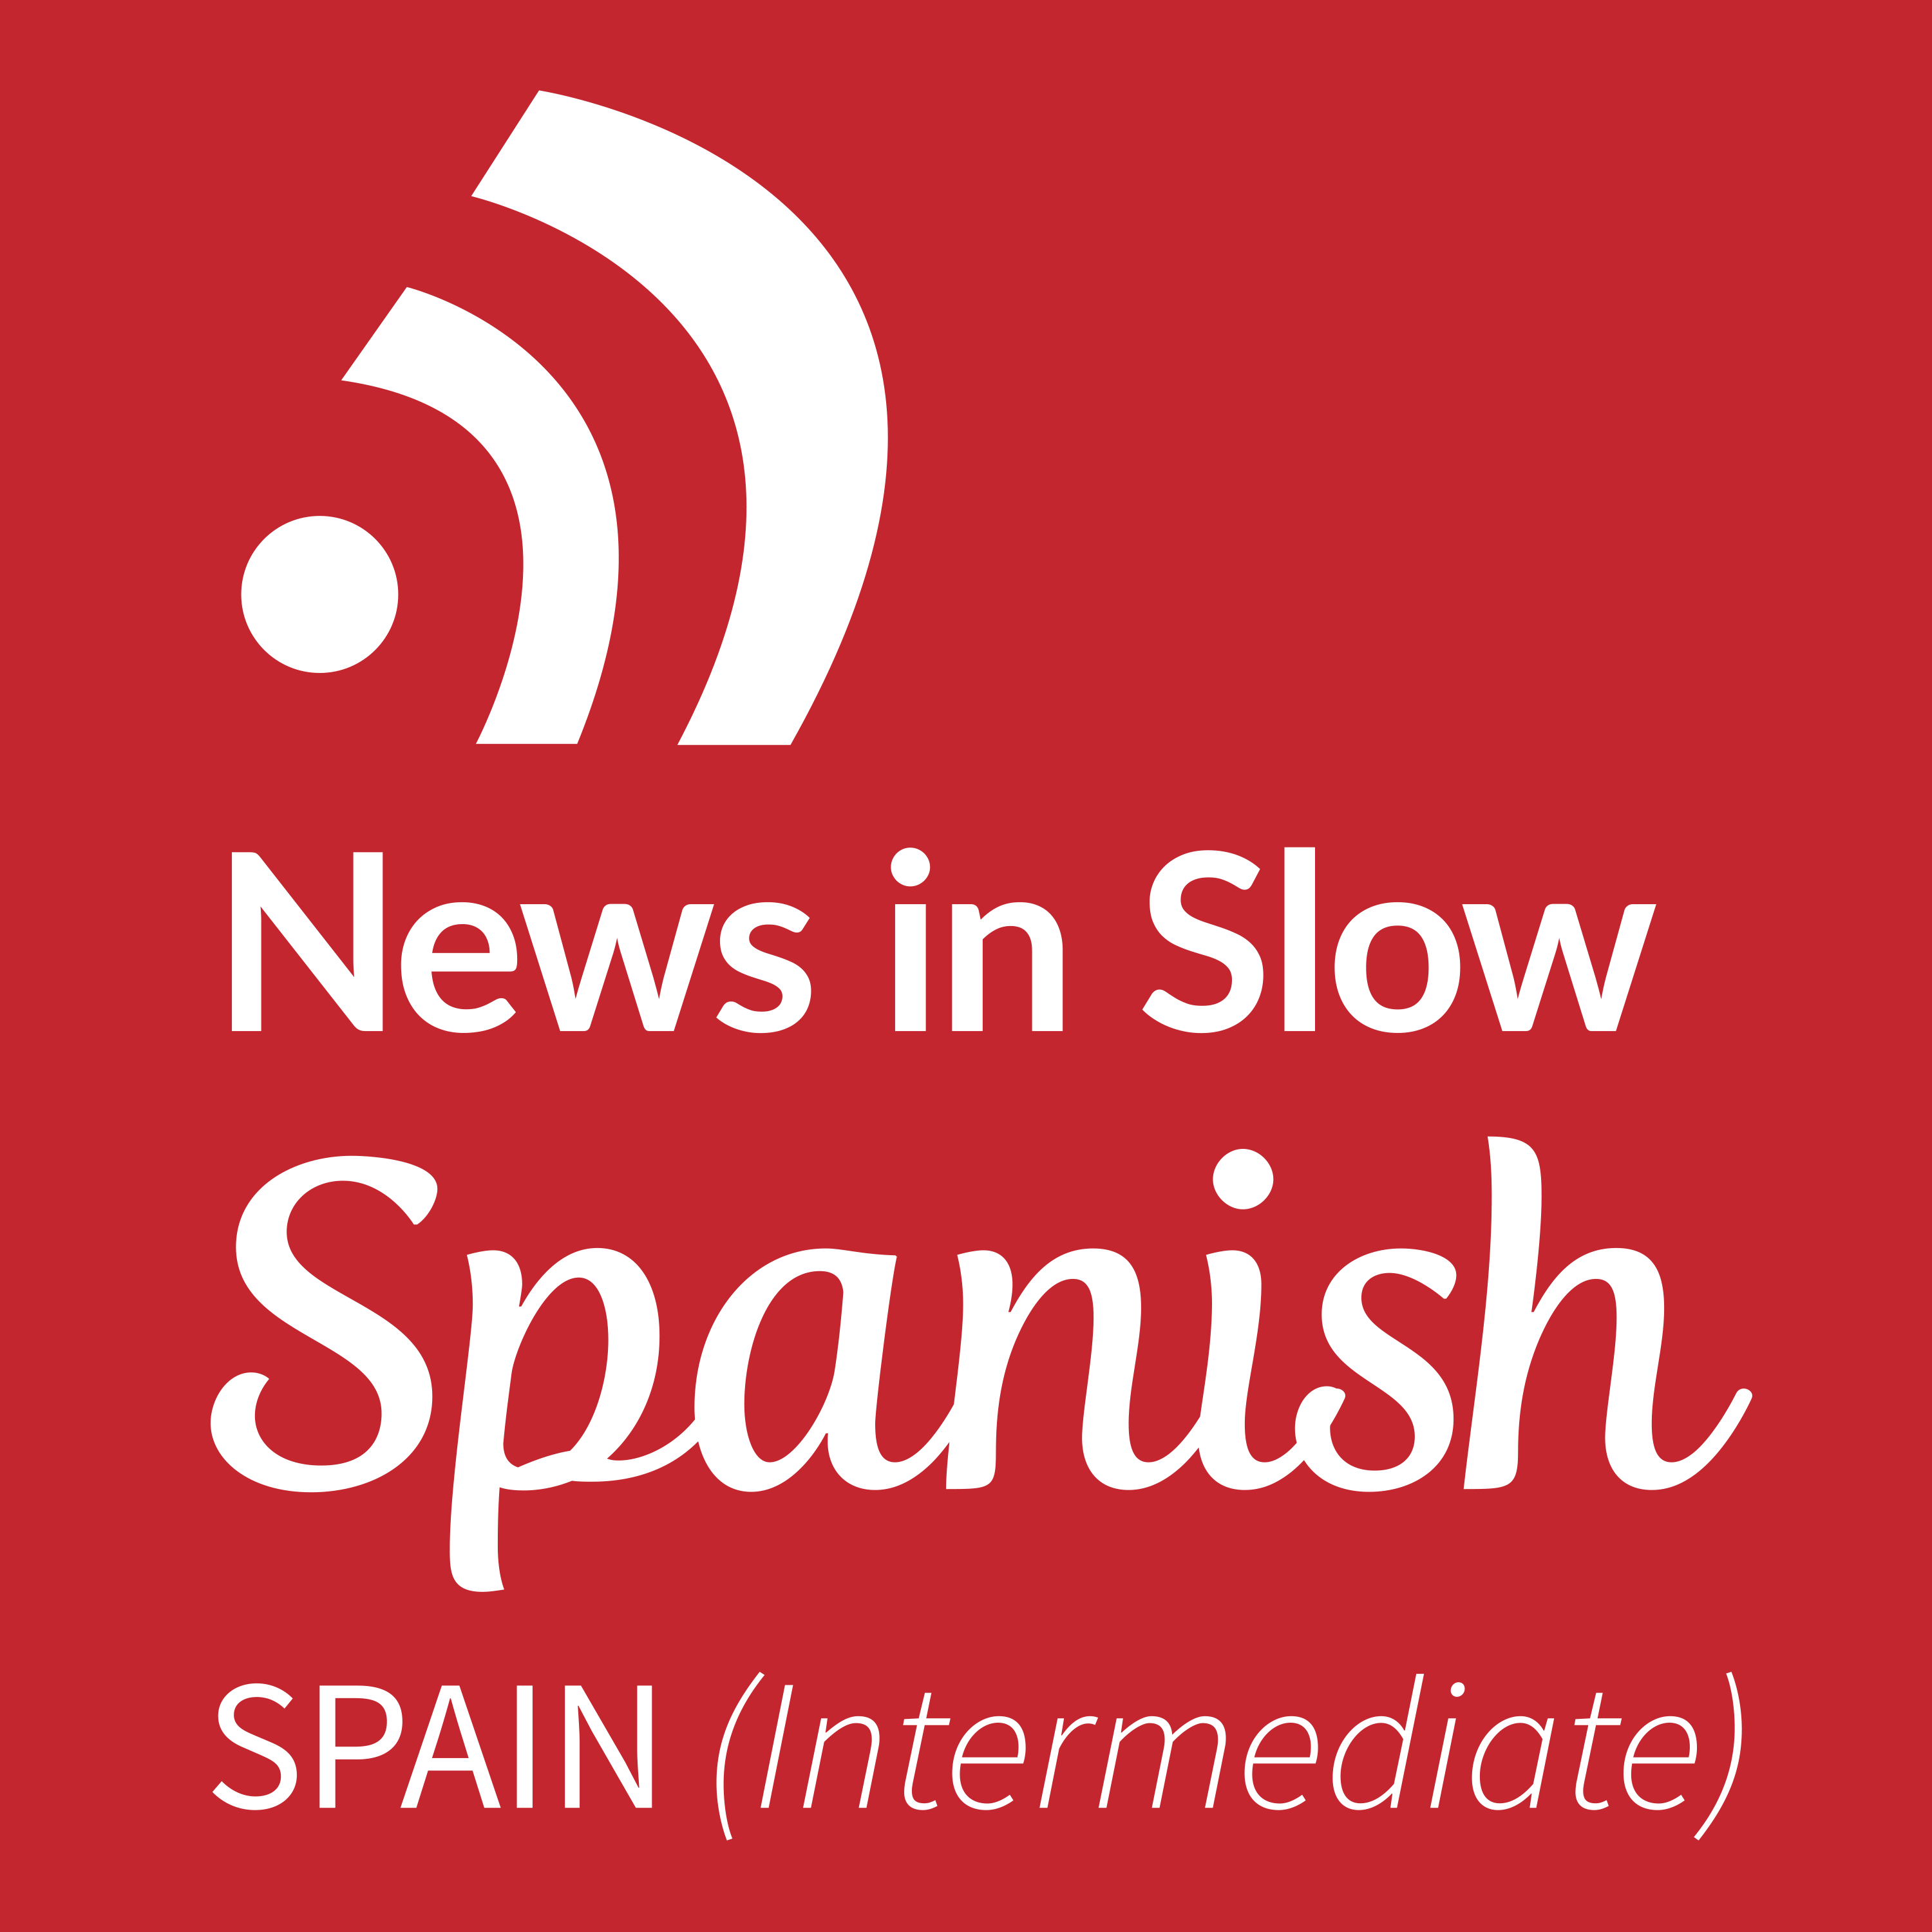 News in Slow Spanish - #404  - Weekly language learning show with discussion of current events